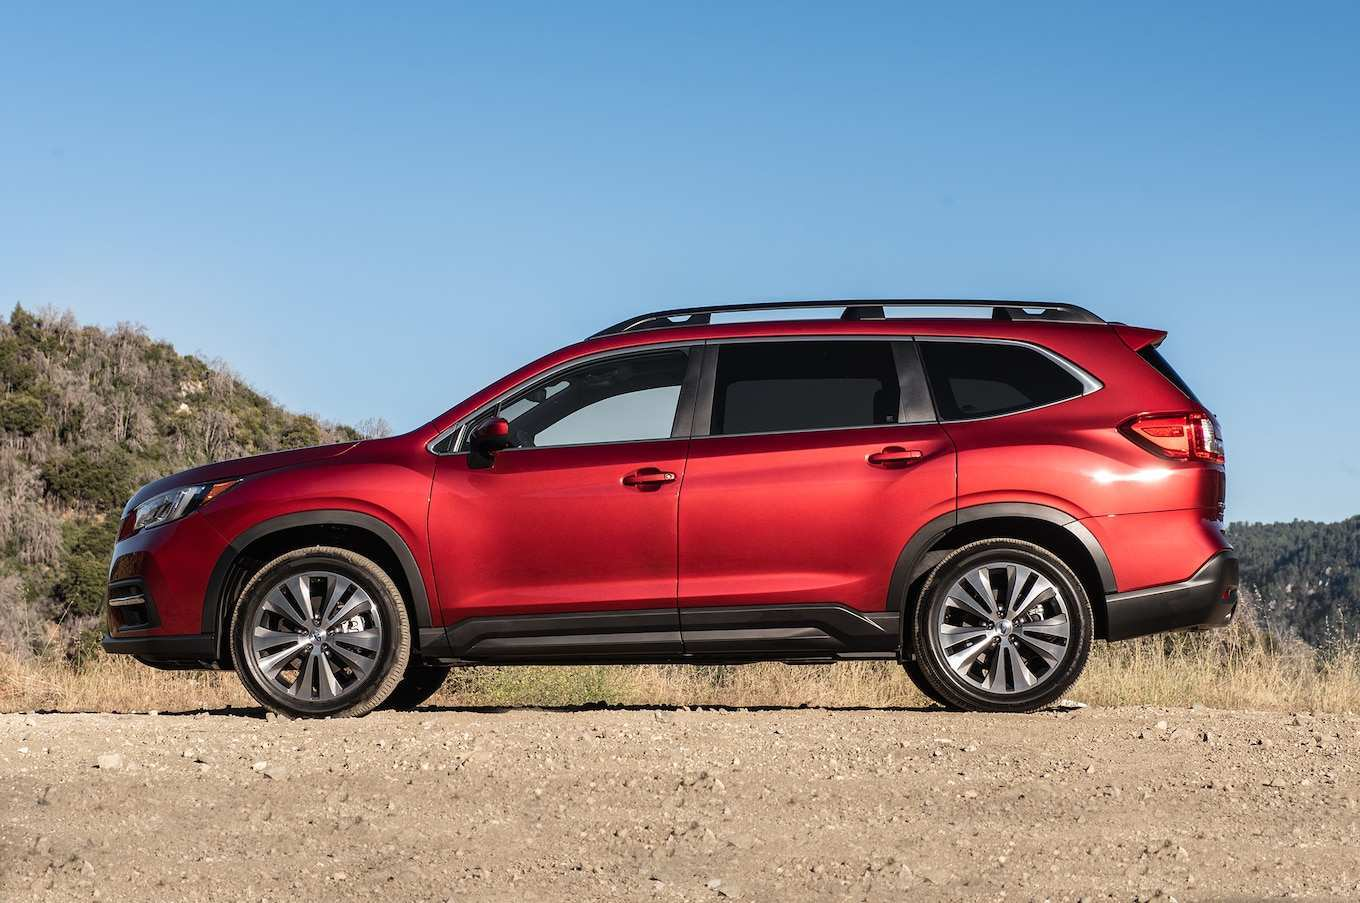 69 Great 2019 Subaru Ascent Engine Specs Reviews with 2019 Subaru Ascent Engine Specs